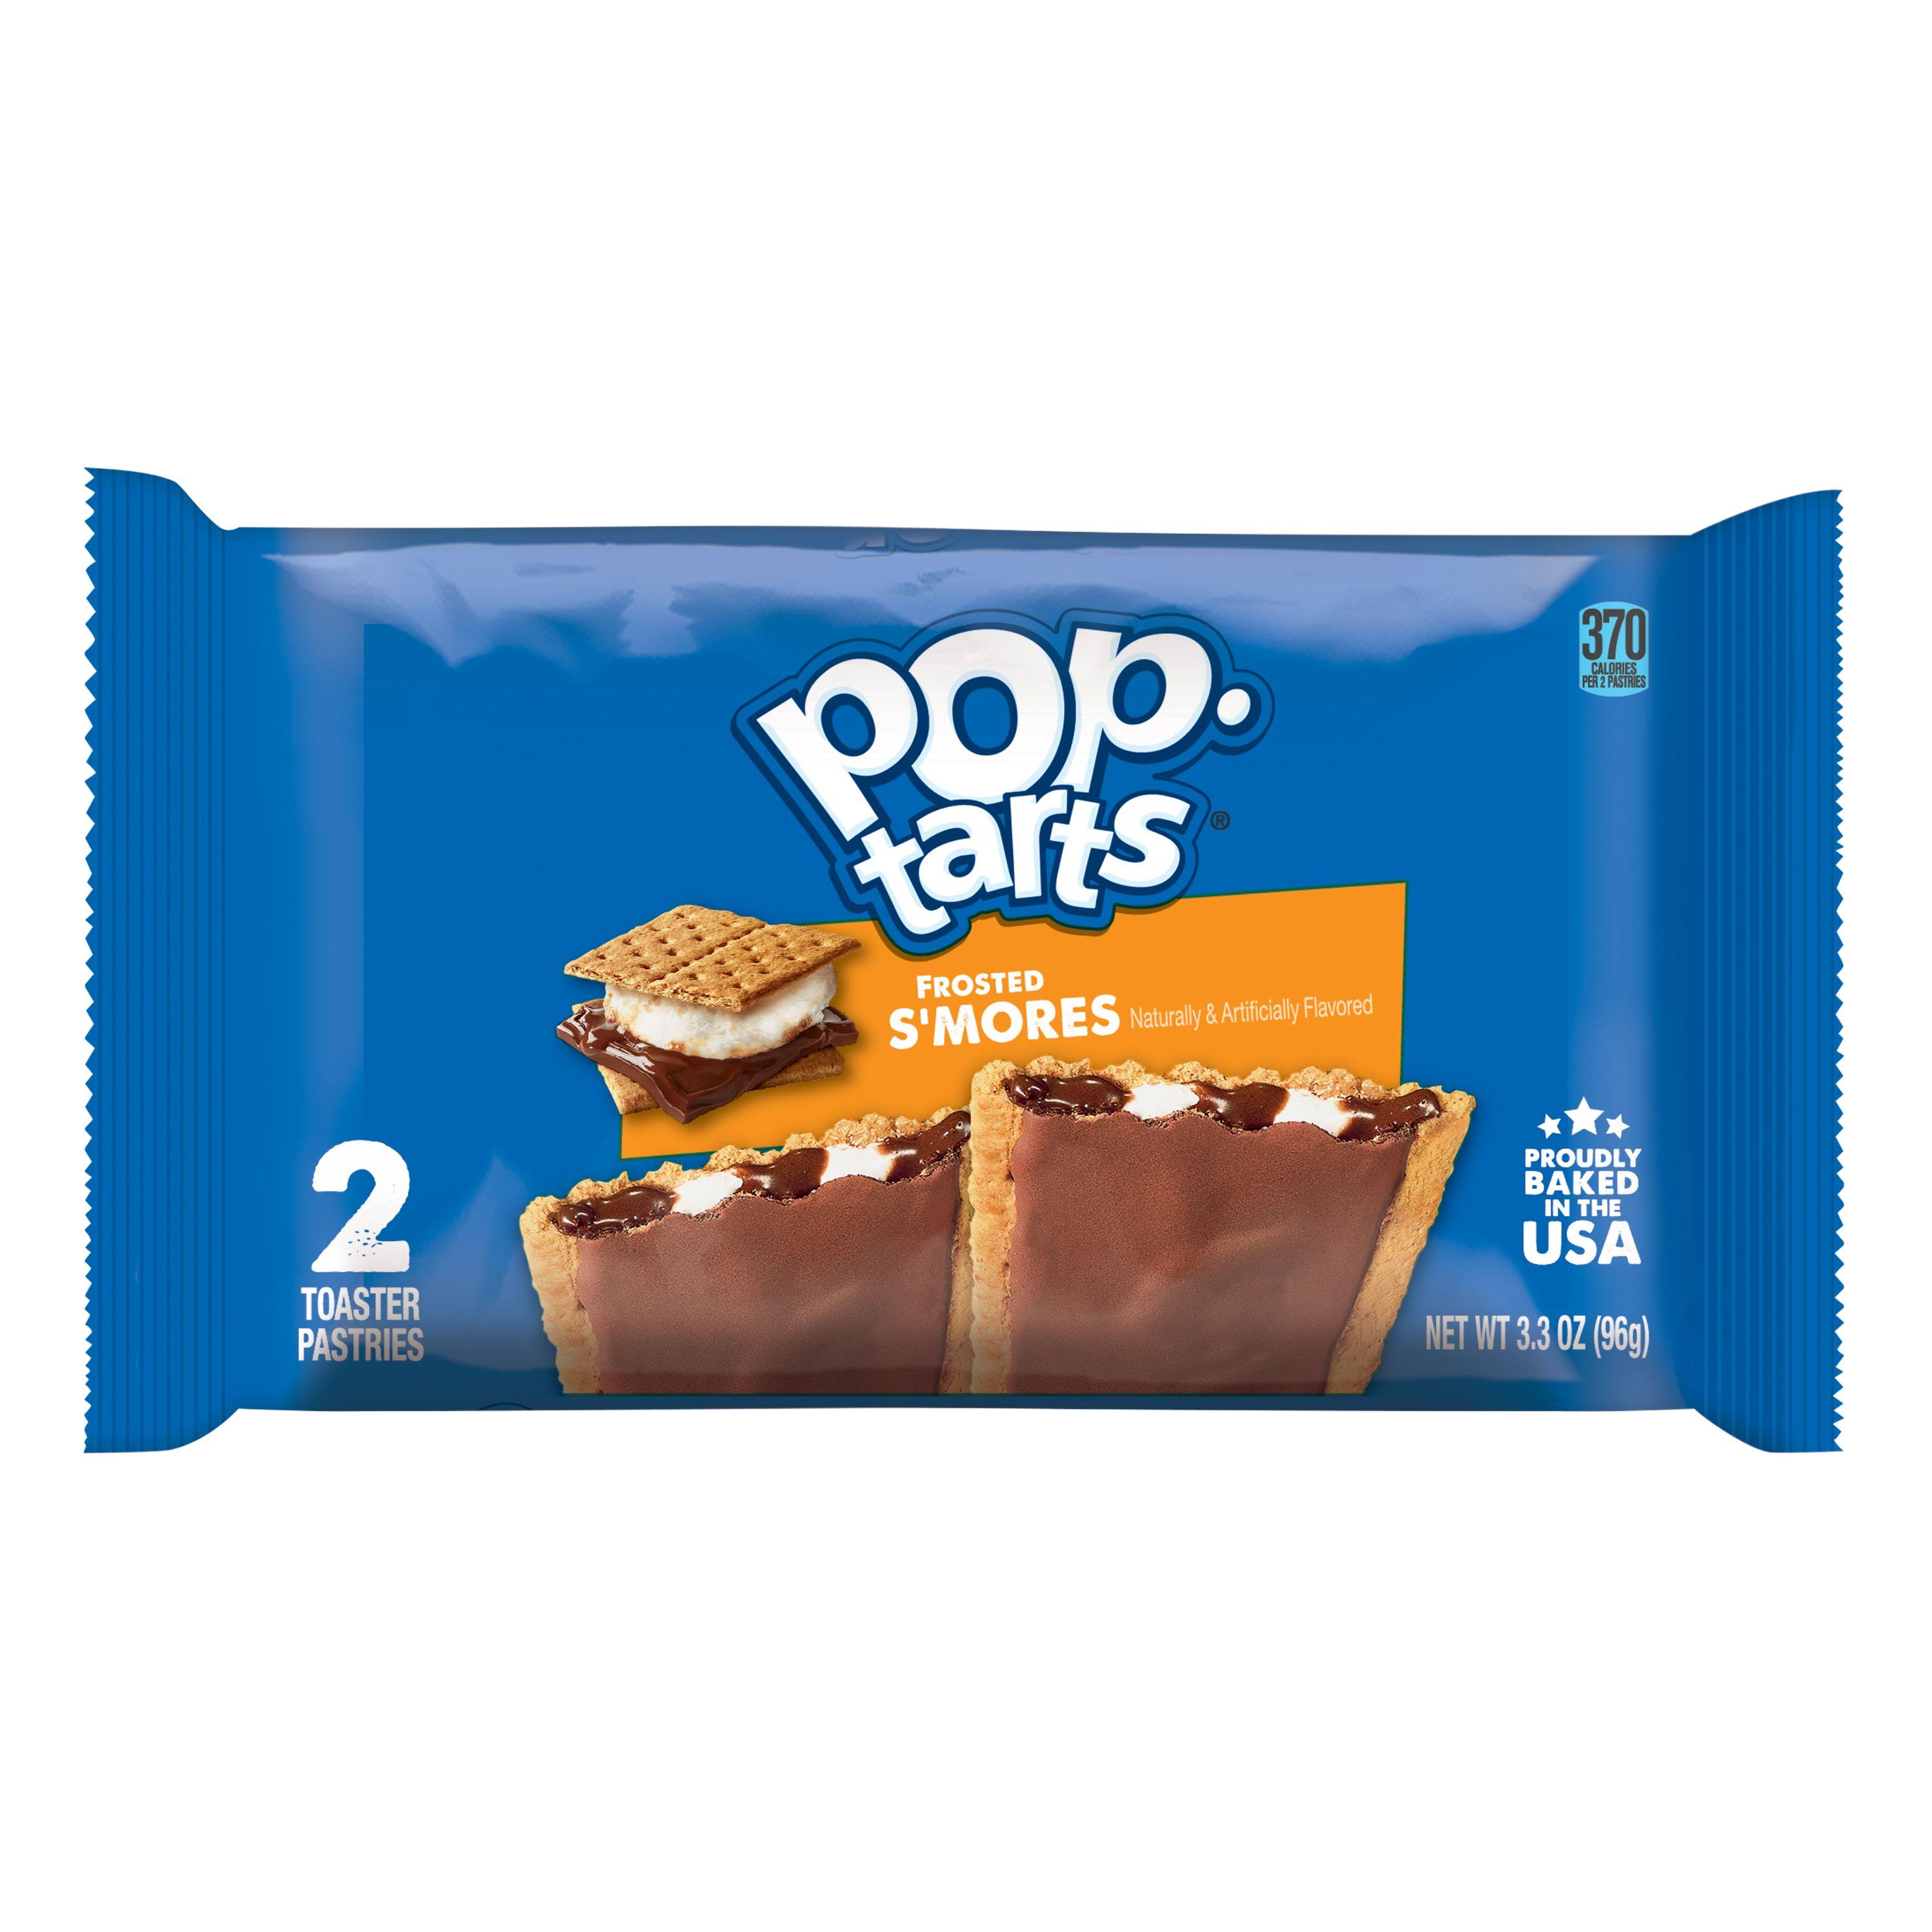 Kellogg's Pop Tarts Frosted S'mores - 104g